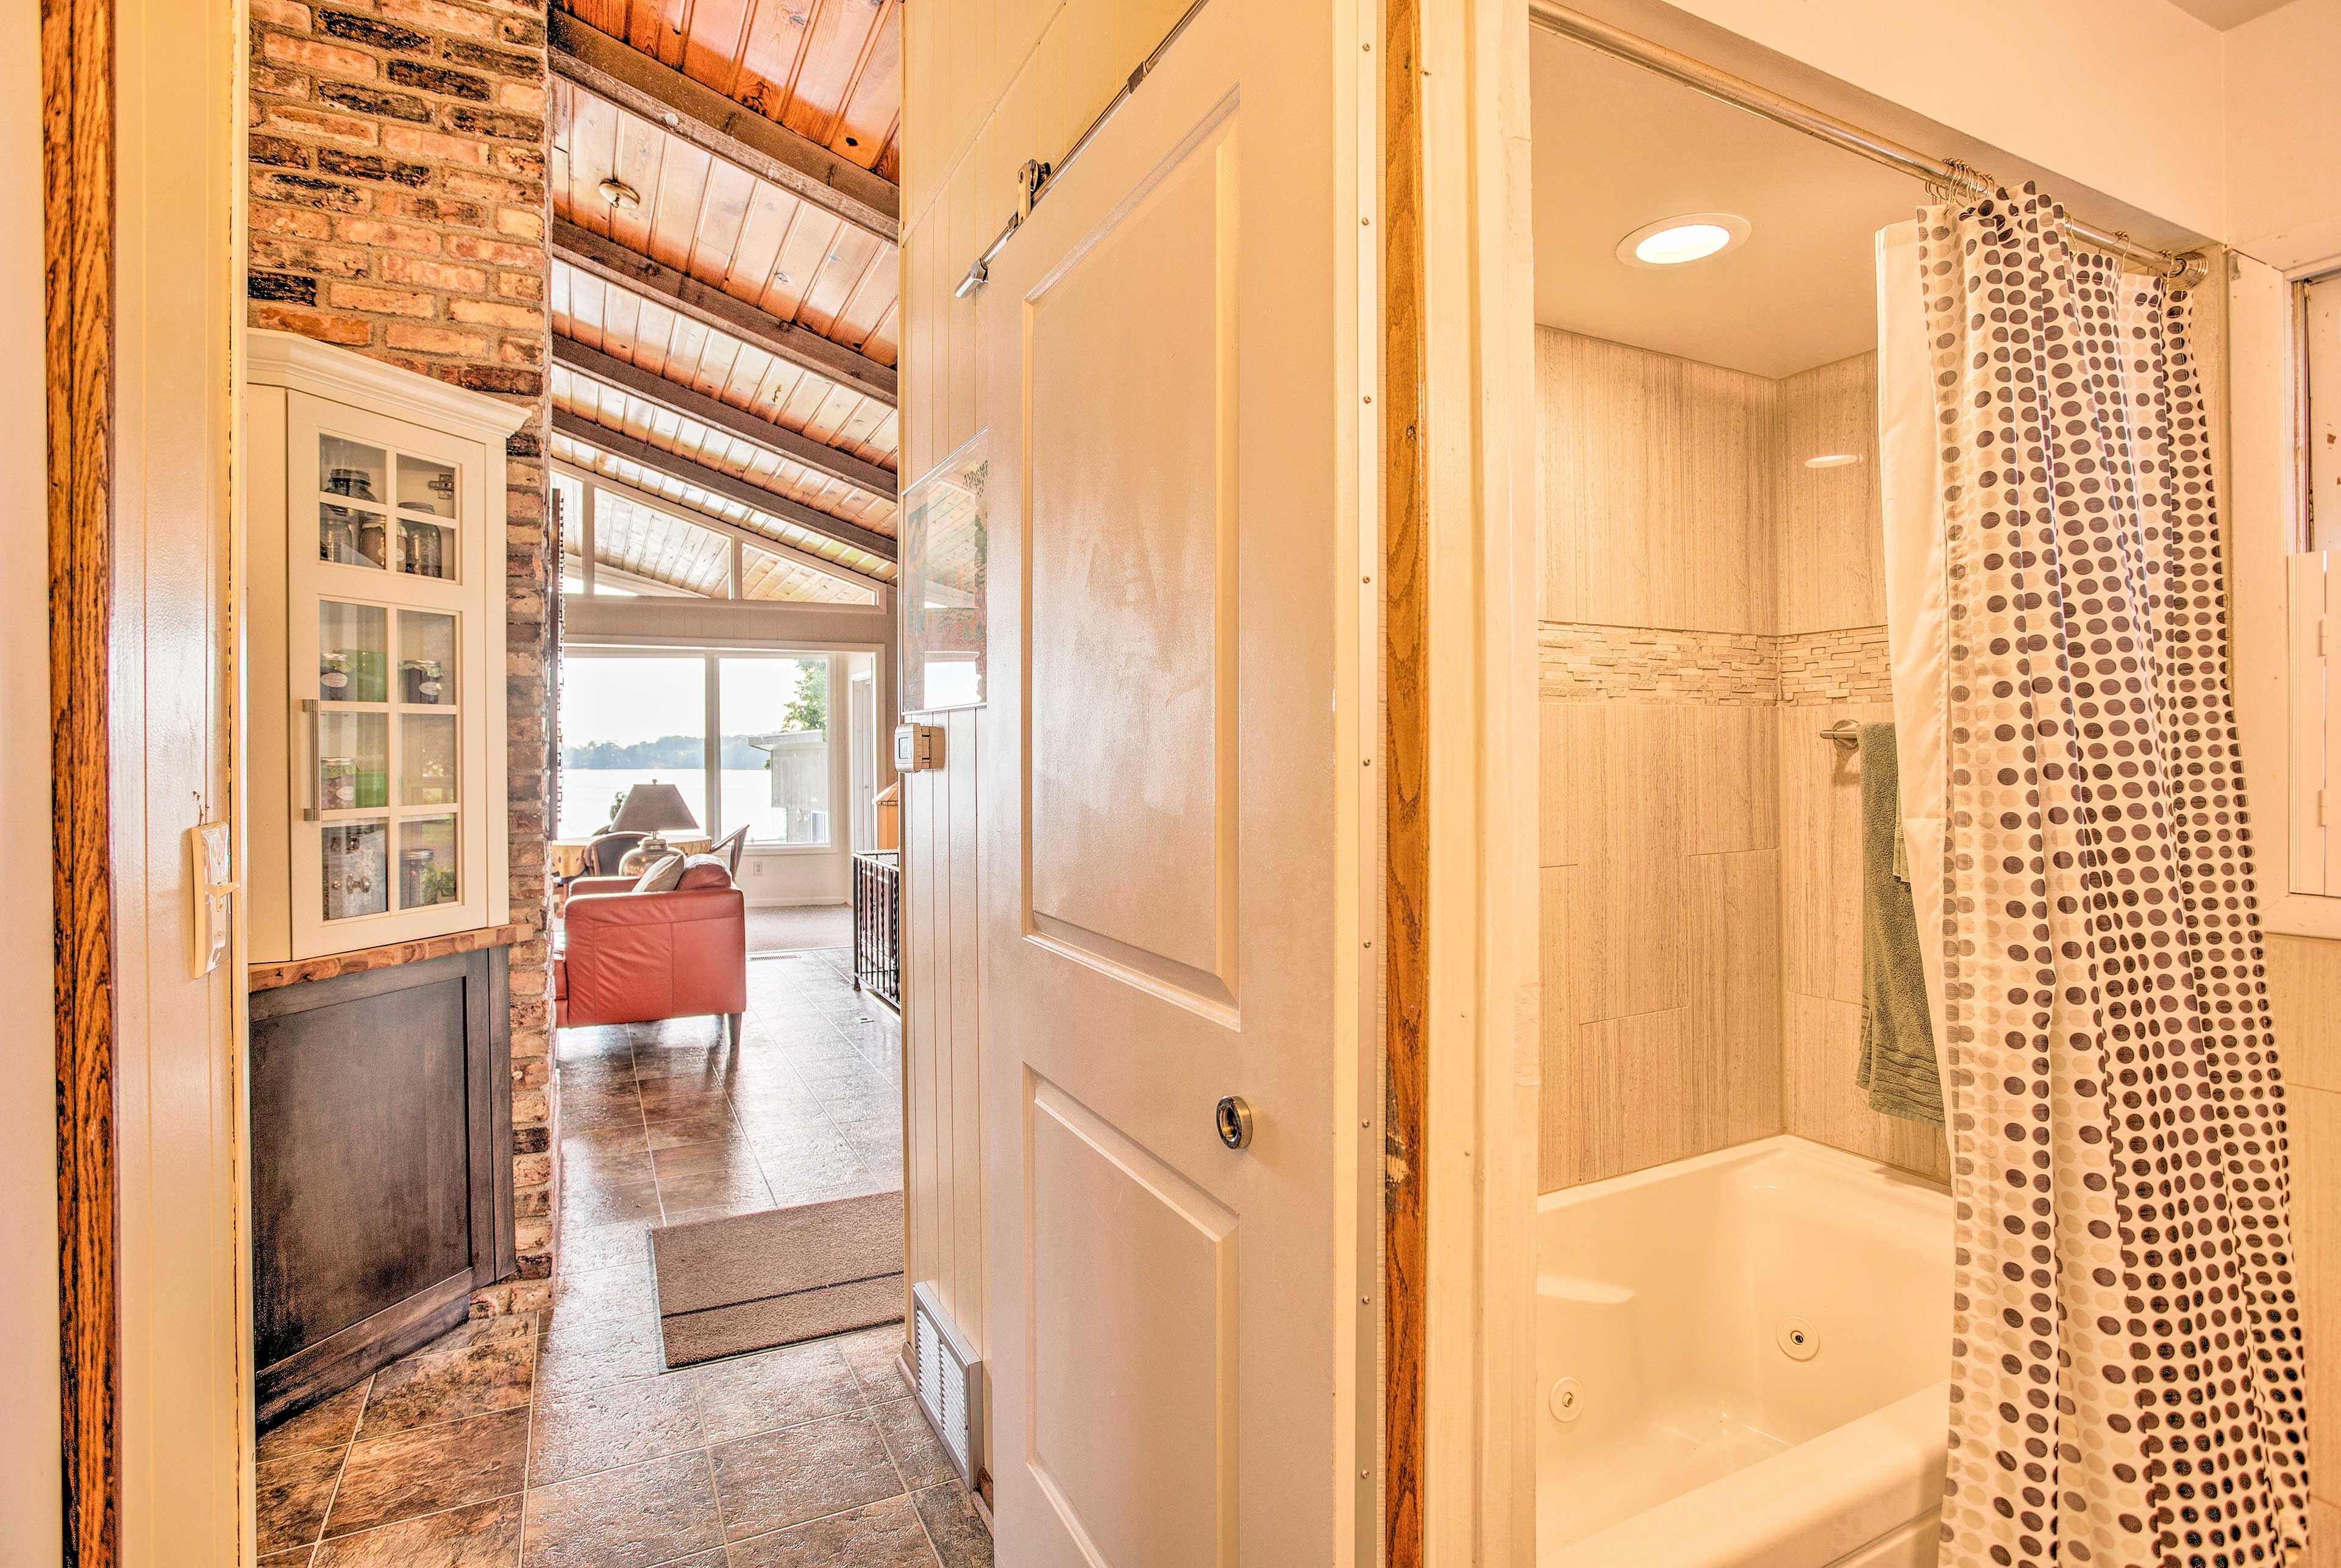 This full bathroom is located just off of the main living area.